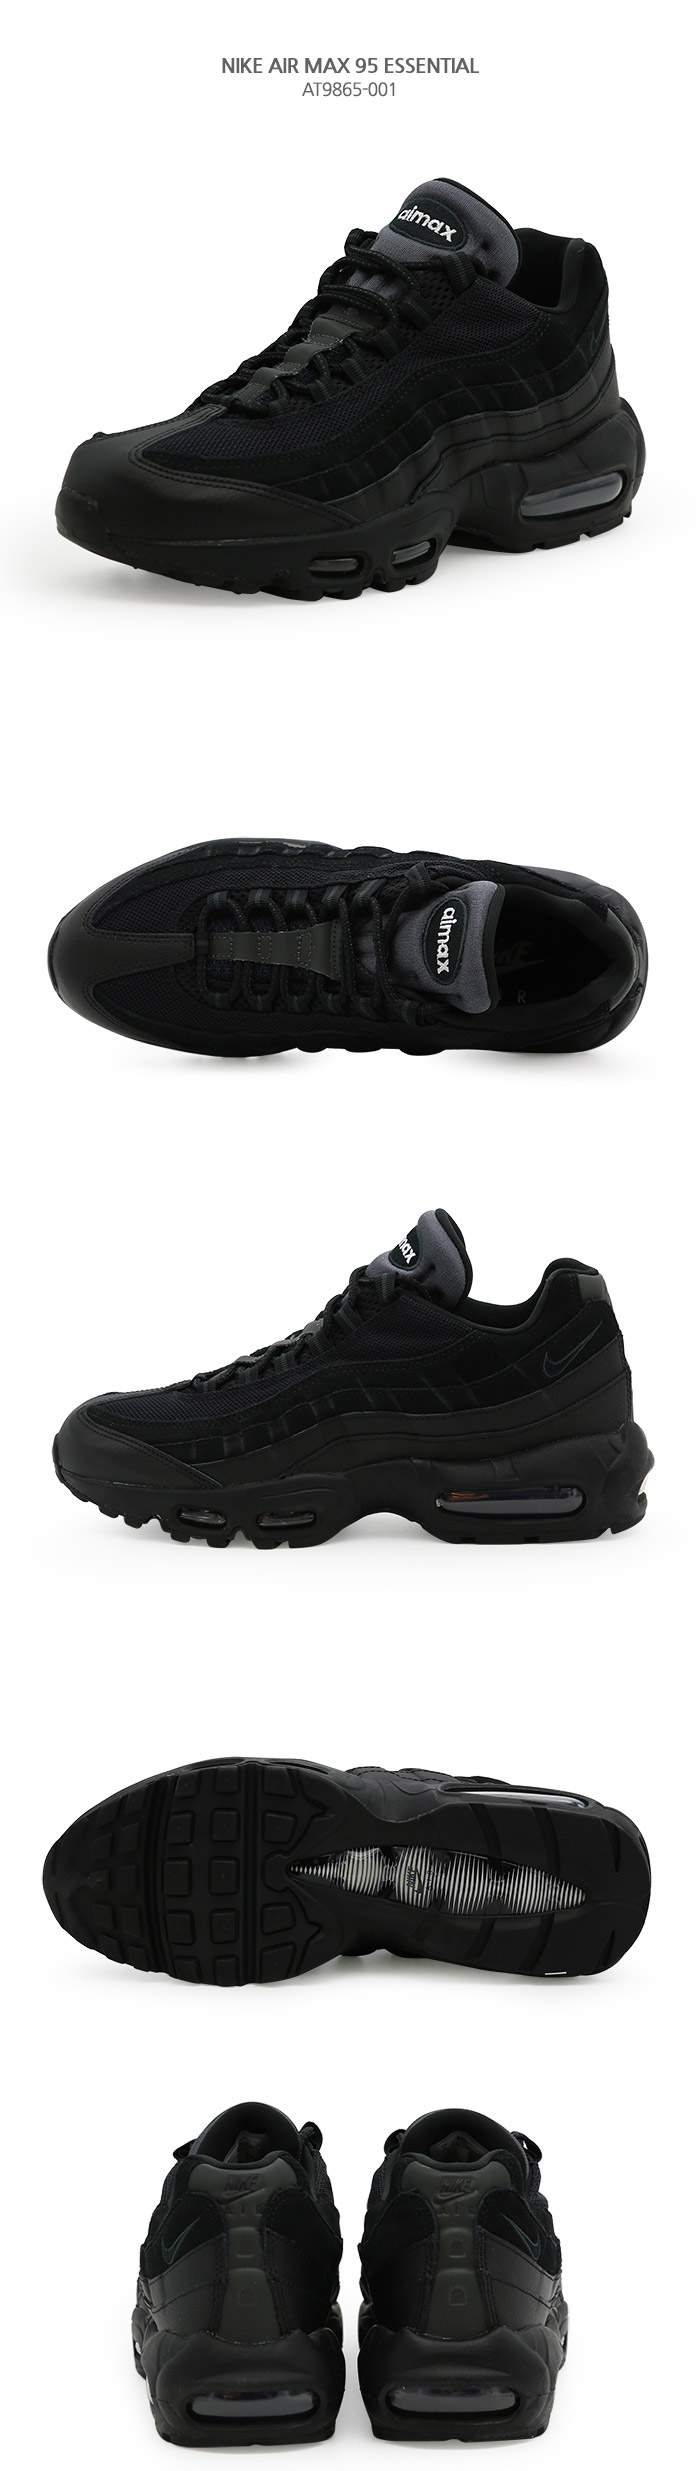 Nike Air Max 95 Black White AT9865 001 Release Info